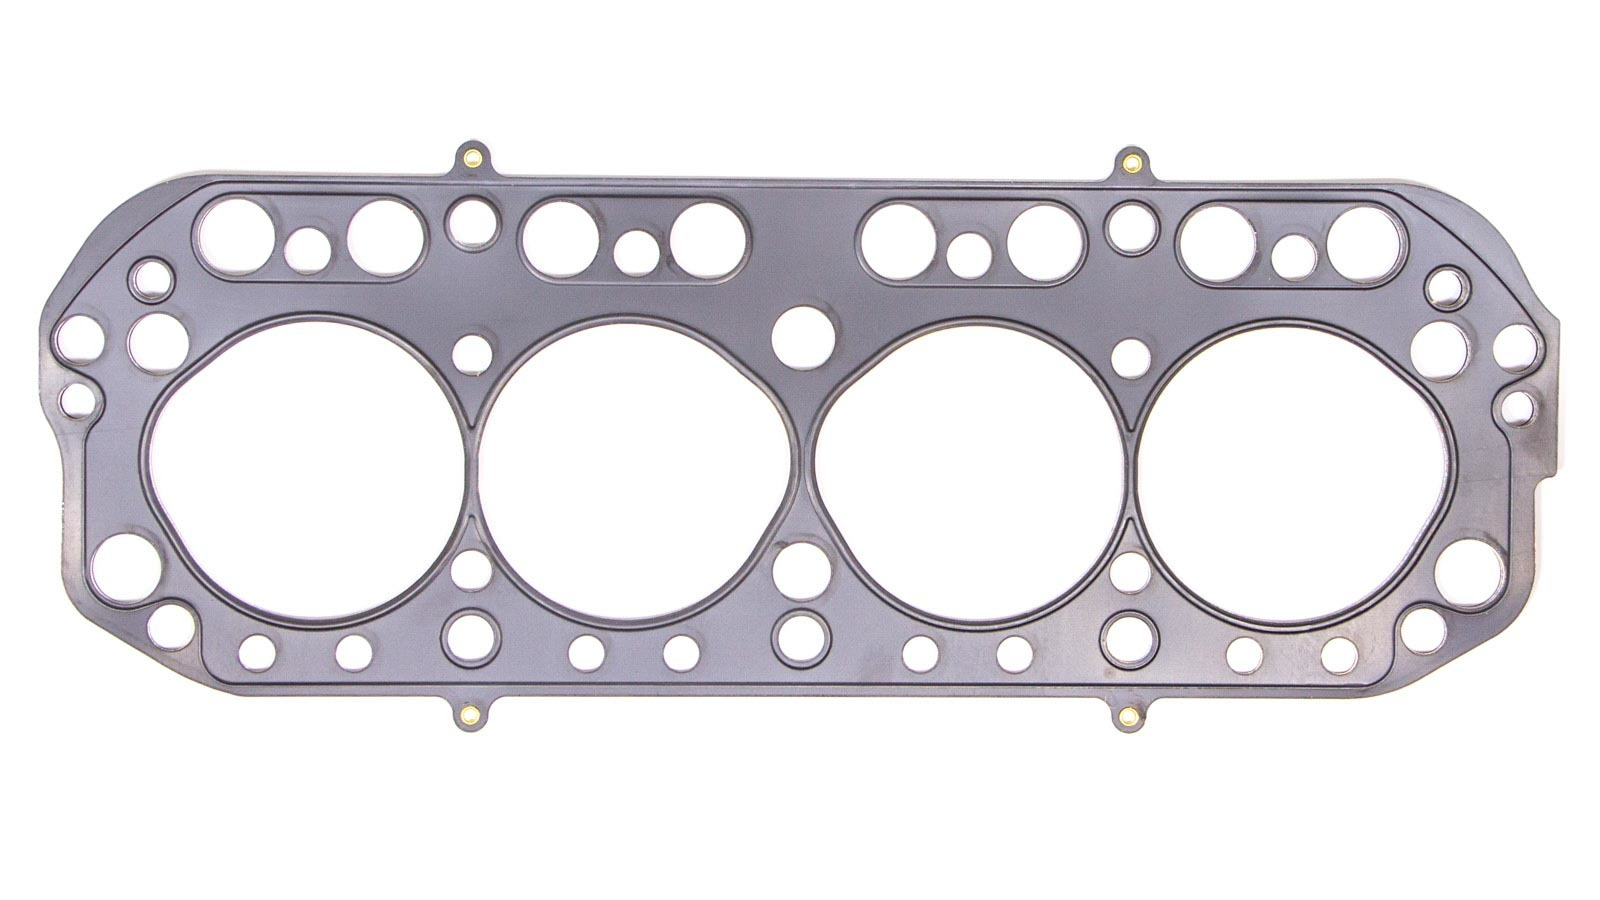 Cometic Gaskets C4147-040 Cylinder Head Gasket, 83.0 mm Bore, 0.040 in Compression Thickness, Multi-Layered Steel, BMC 4-Cylinder, Each